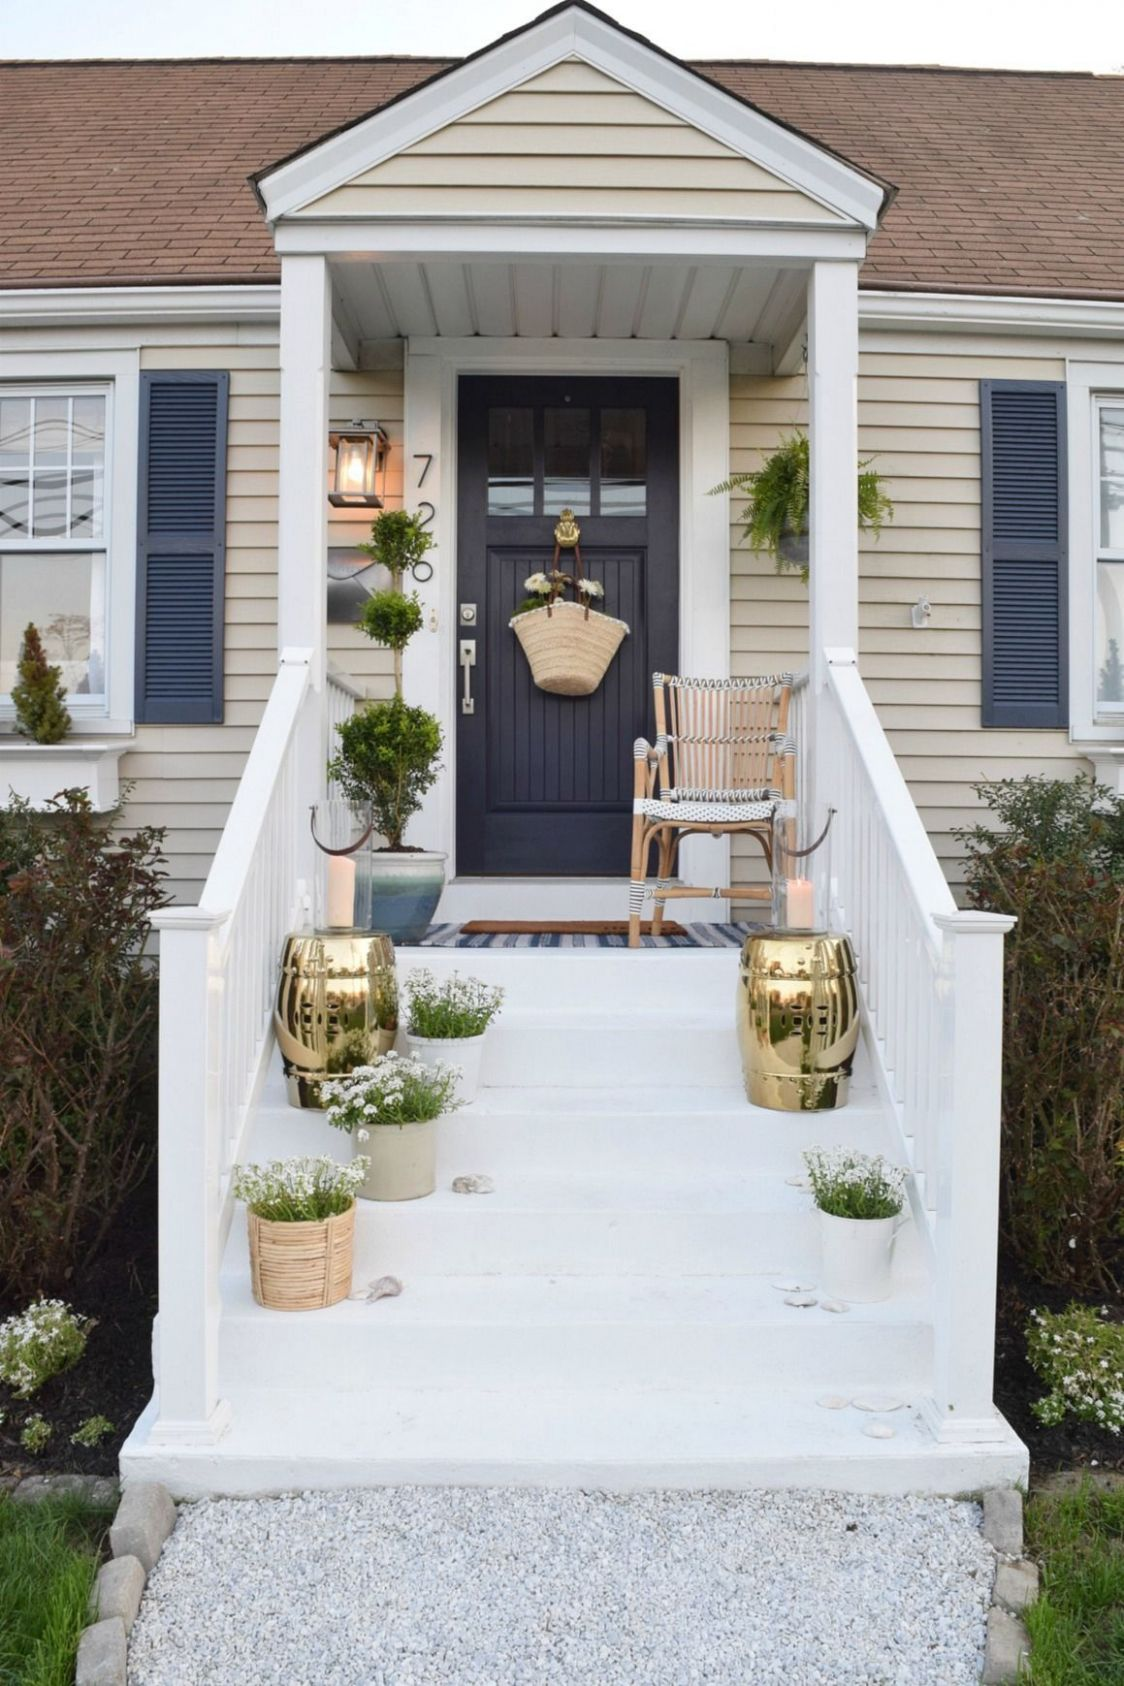 Front Porch Ideas and Designing the Outdoors | Front porch steps ... - front porch ideas